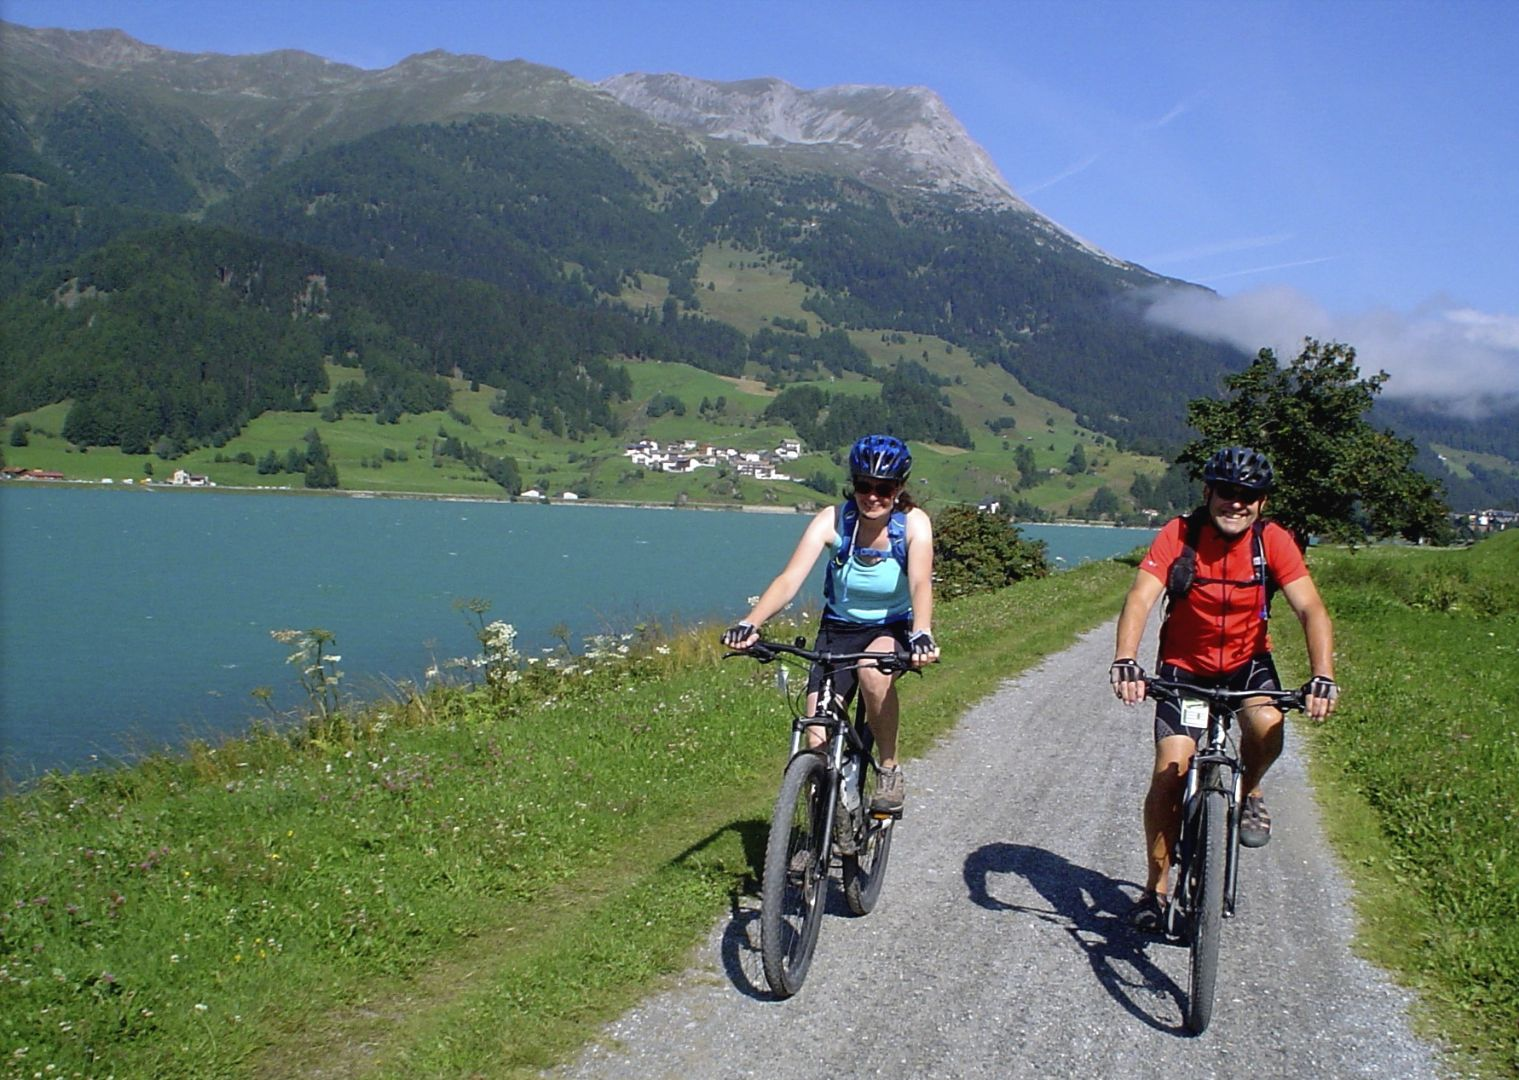 leisurecyclingaustria4.jpg - Austria - Ten Lakes Tour - Self-Guided Leisure Cycling Holiday - Leisure Cycling